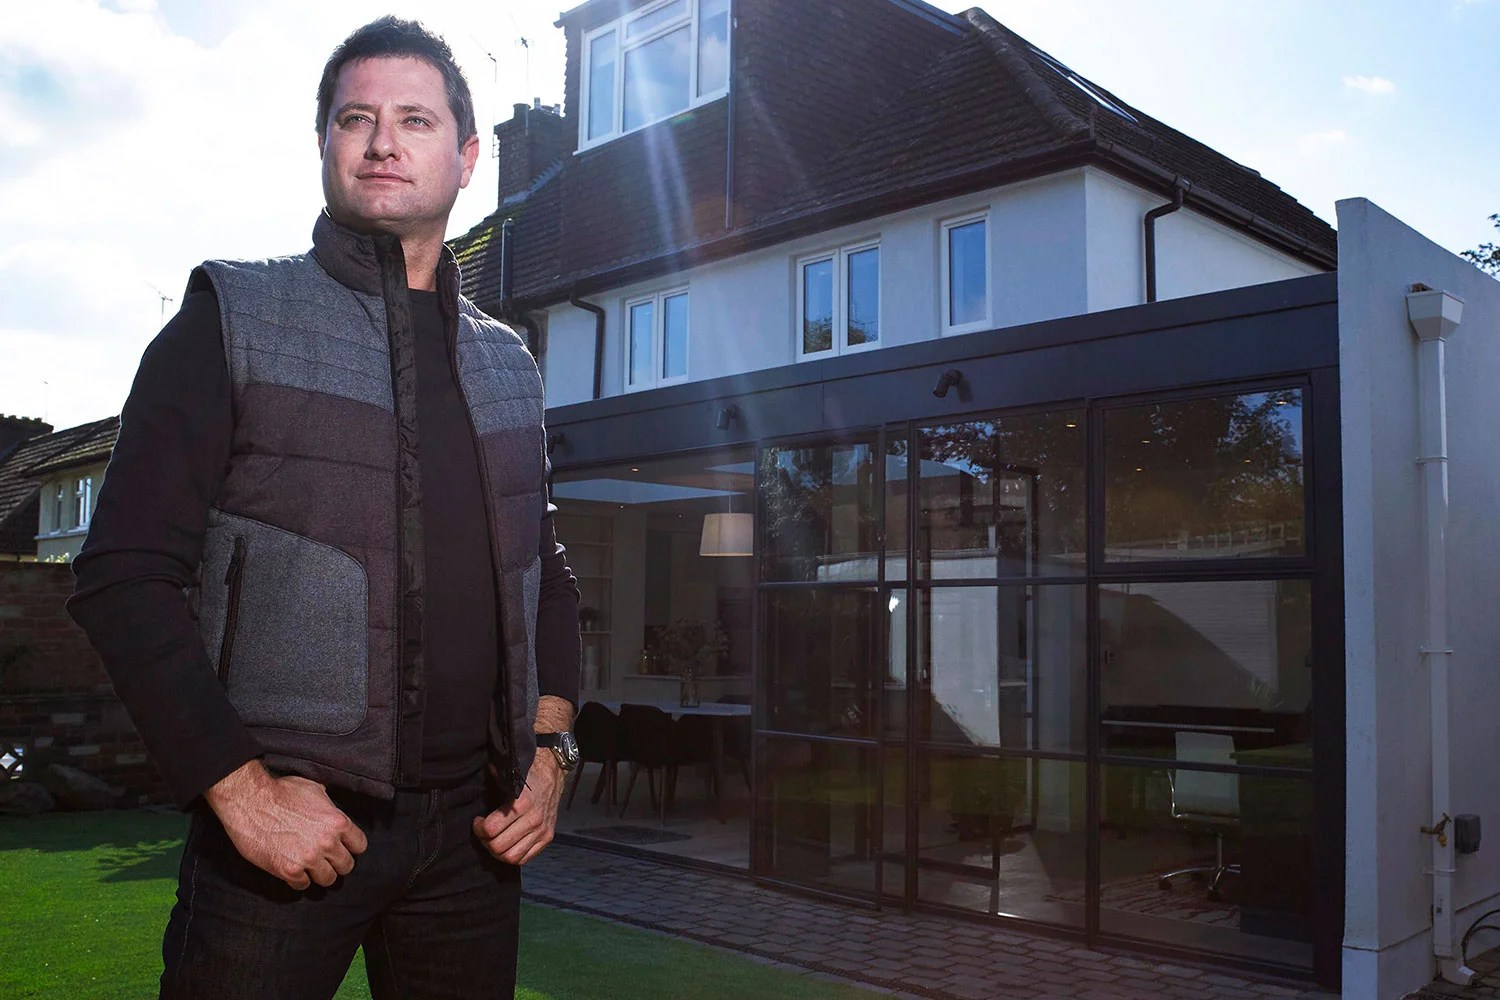 Ugly House To Lovely House Channel 4 George Clarke